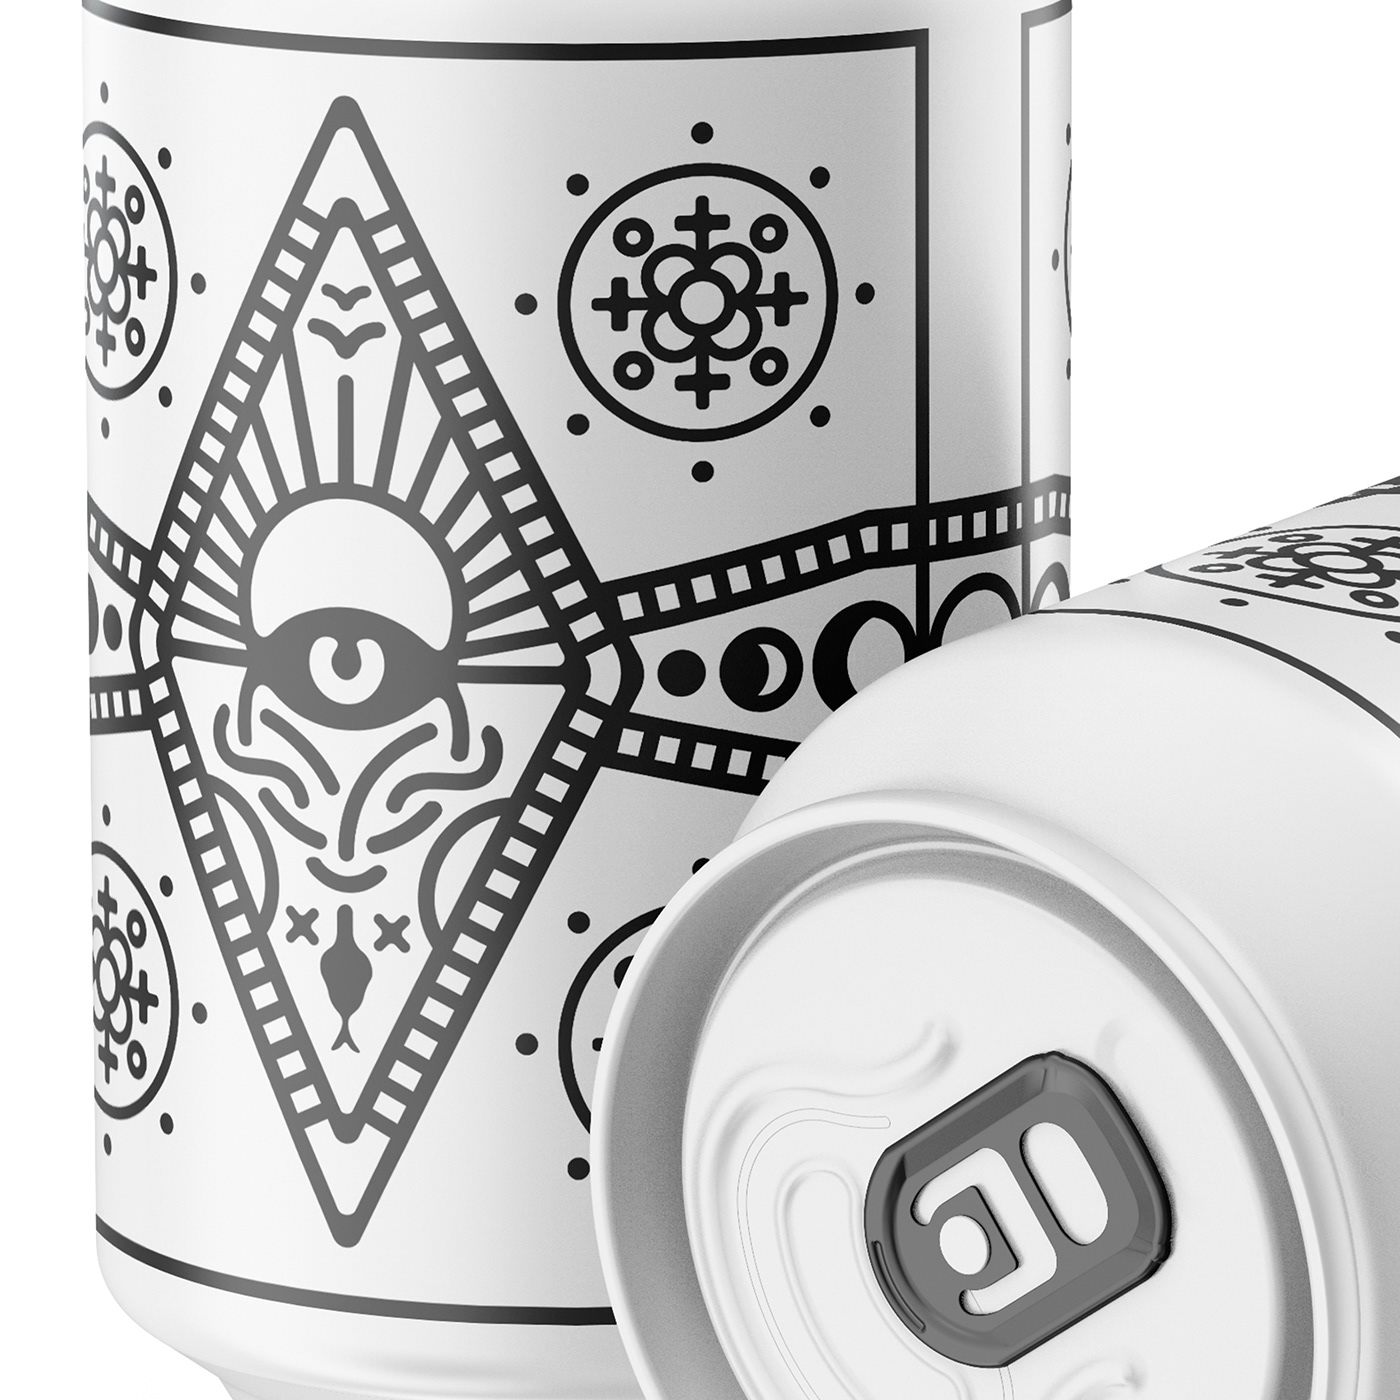 design beer graphic symbol icons logo cool dope meaningful Packaging